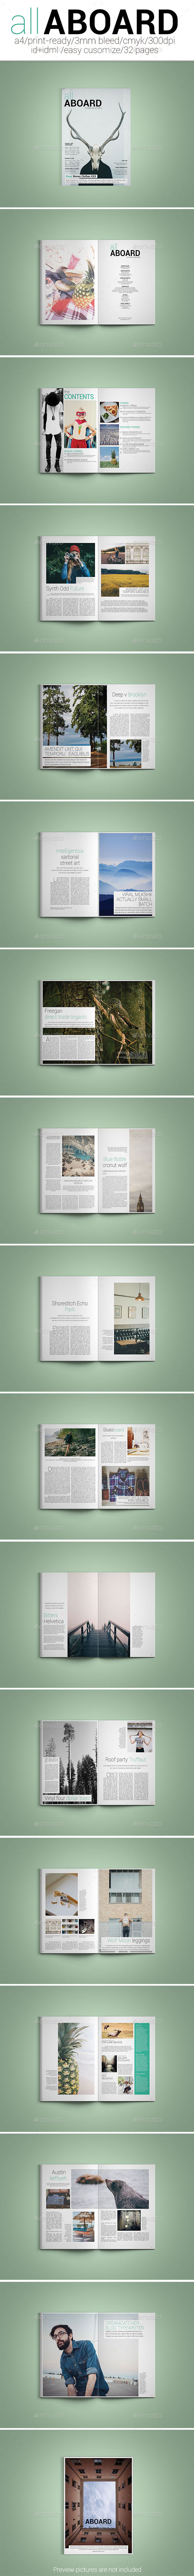 All Aboard Magazine - Magazines Print Templates